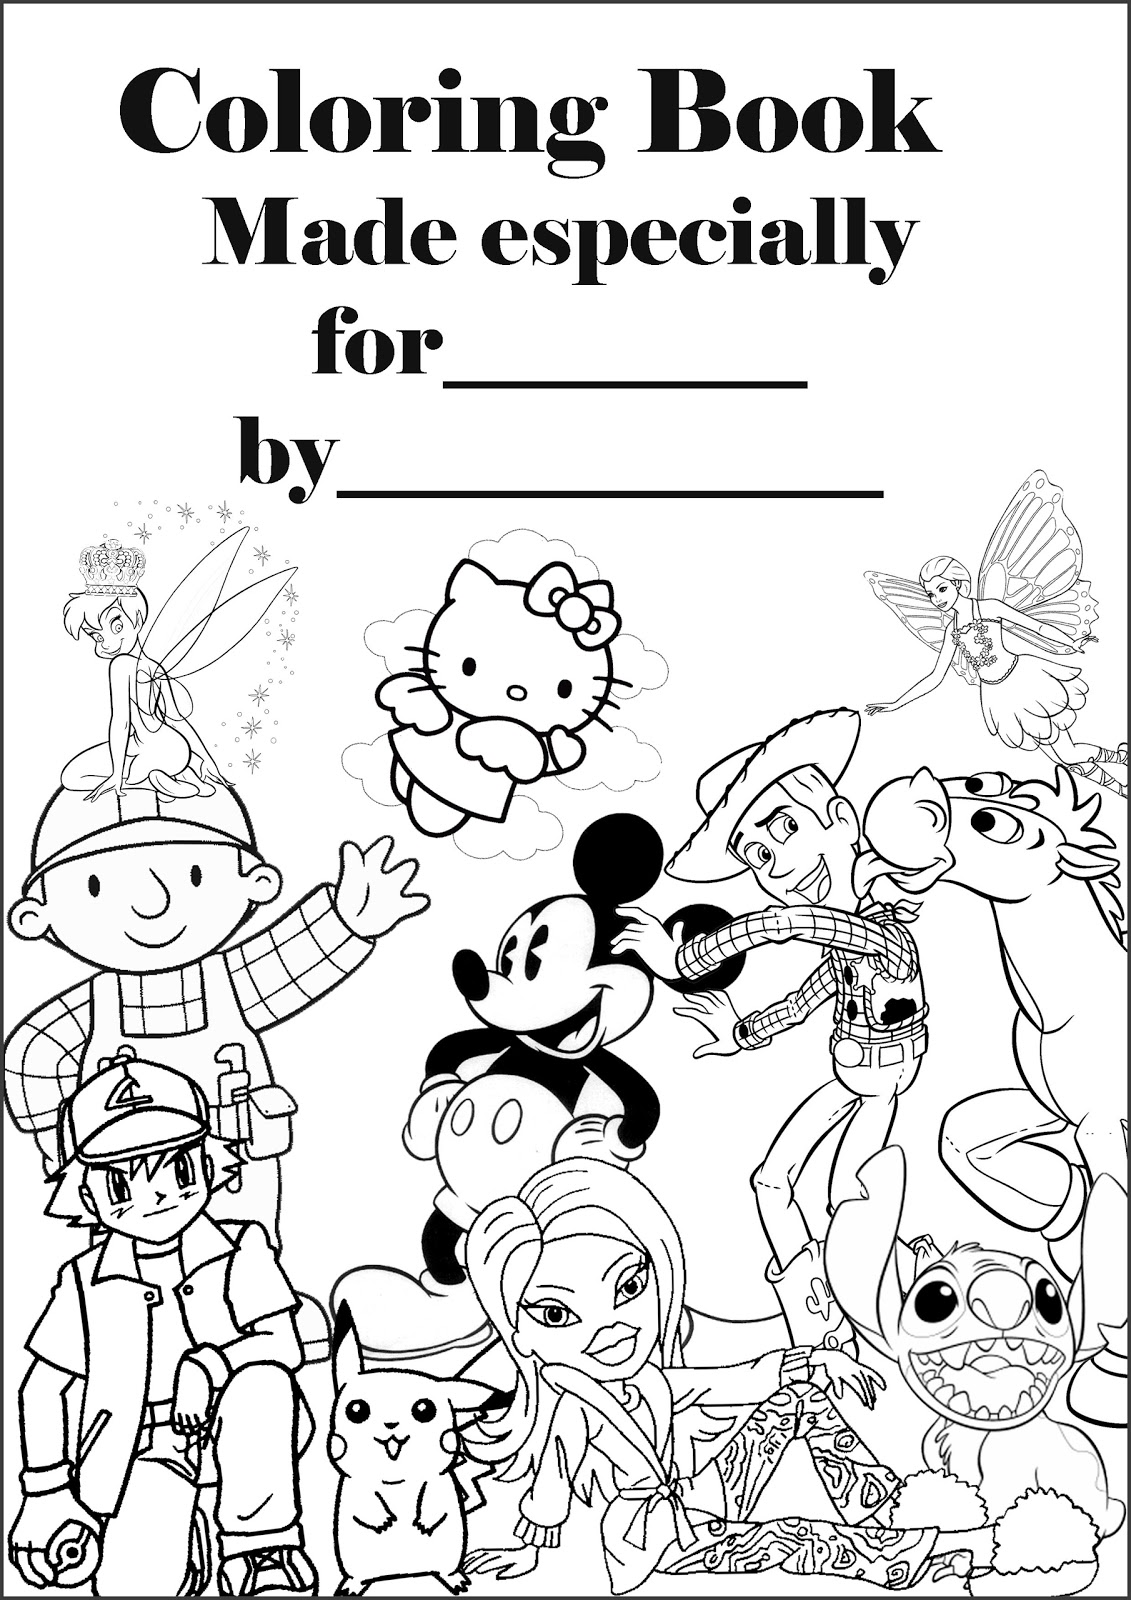 printable coloring book front cover page - Bratz Coloring Book